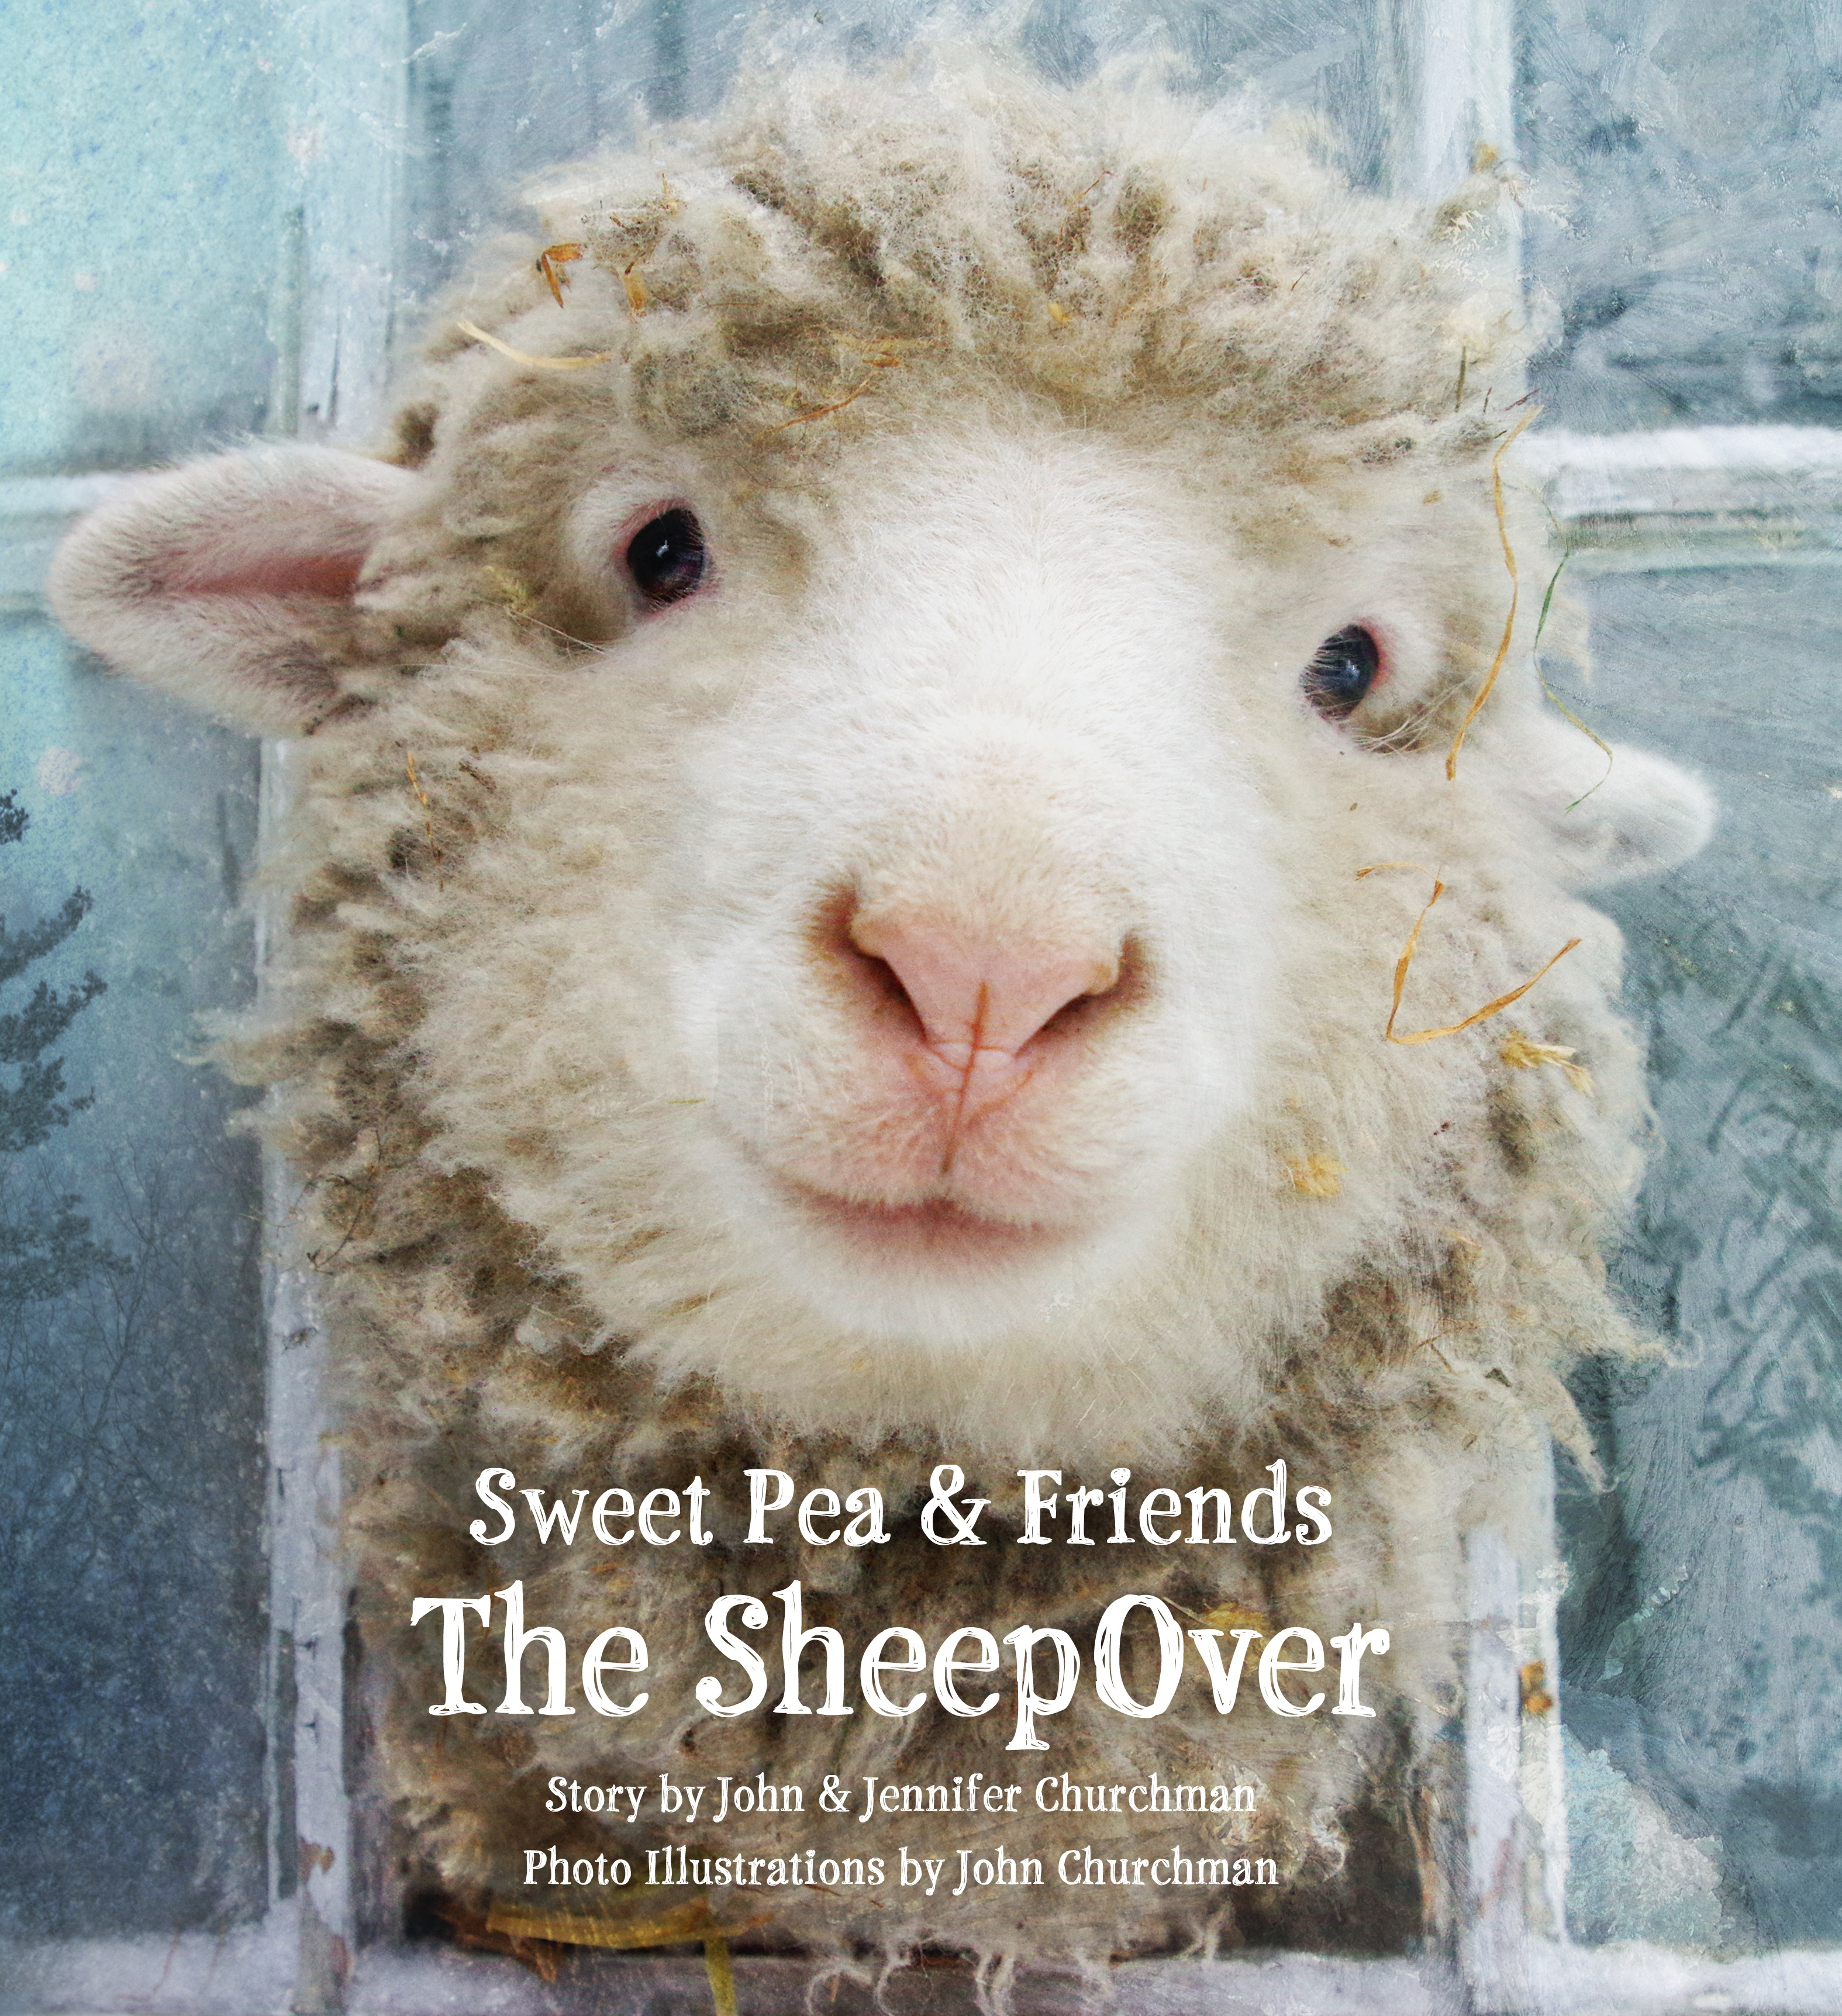 Sweet Pea and Friends: The SheepOver